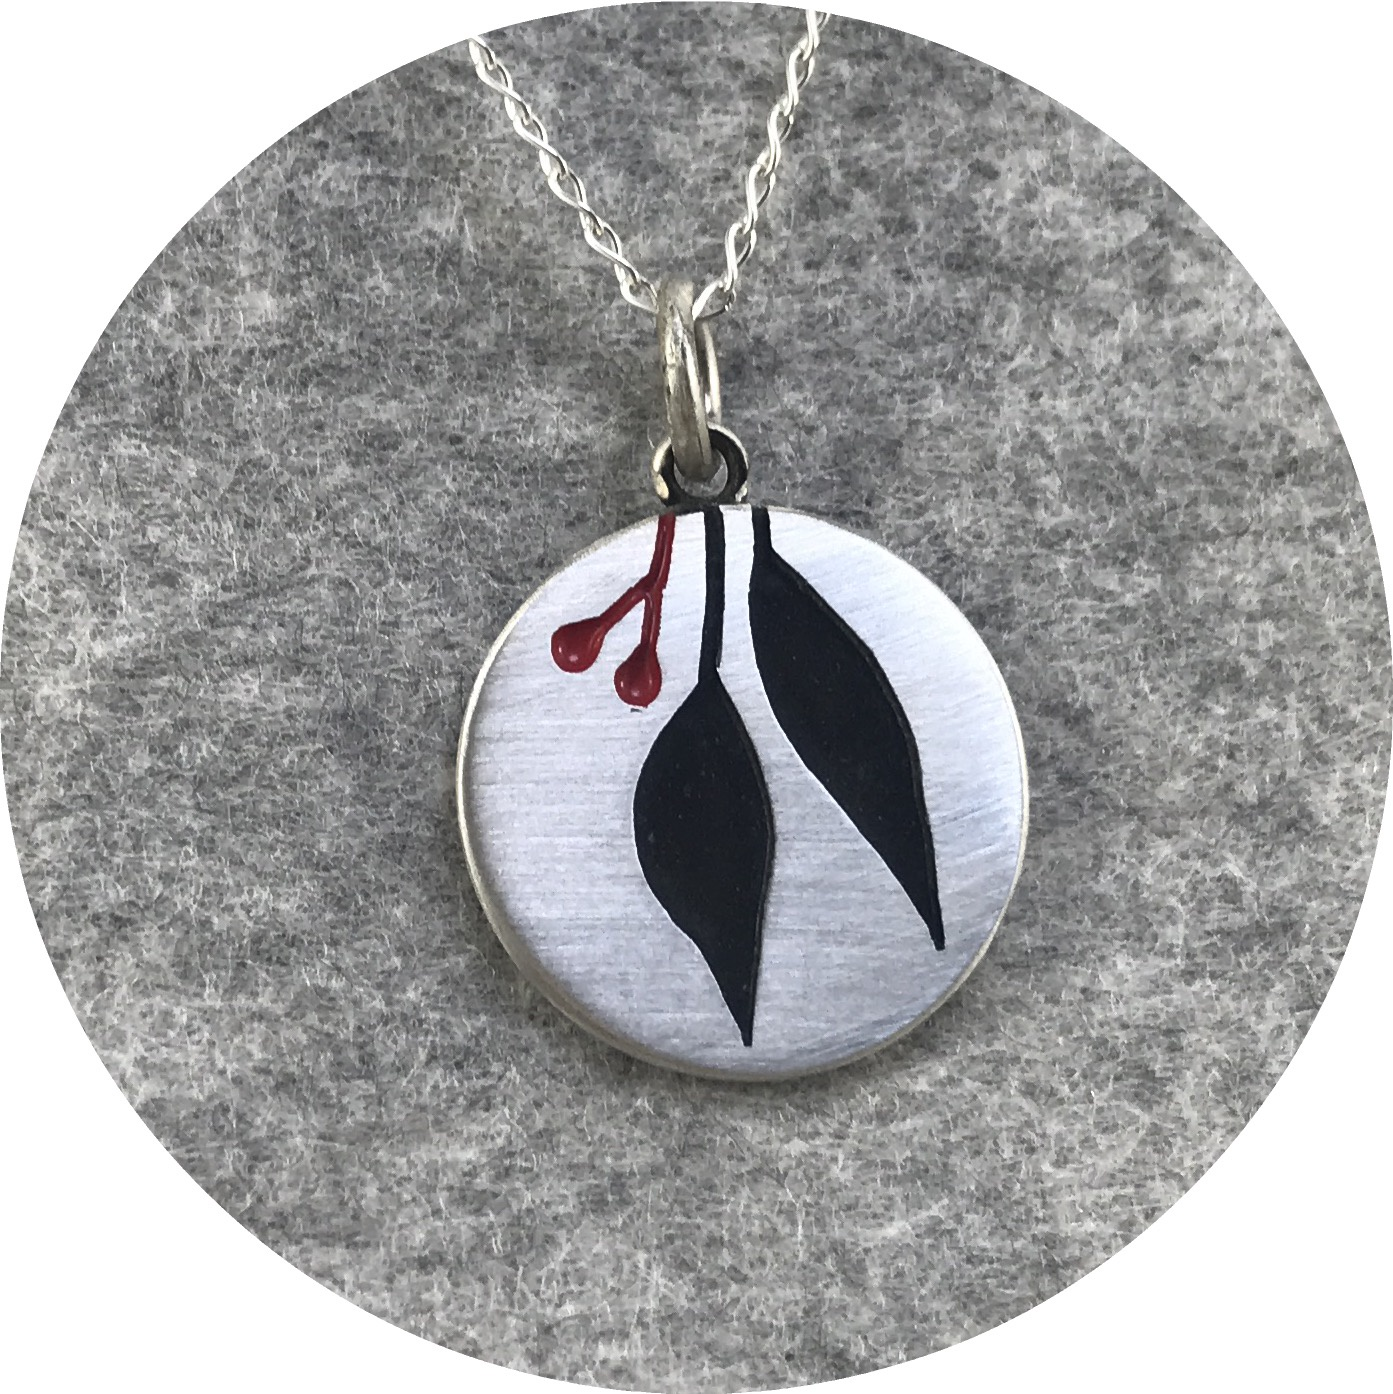 Emma Kidson - Small Gum Leaf Necklace in Sterling Silver and Two Tone Enamel